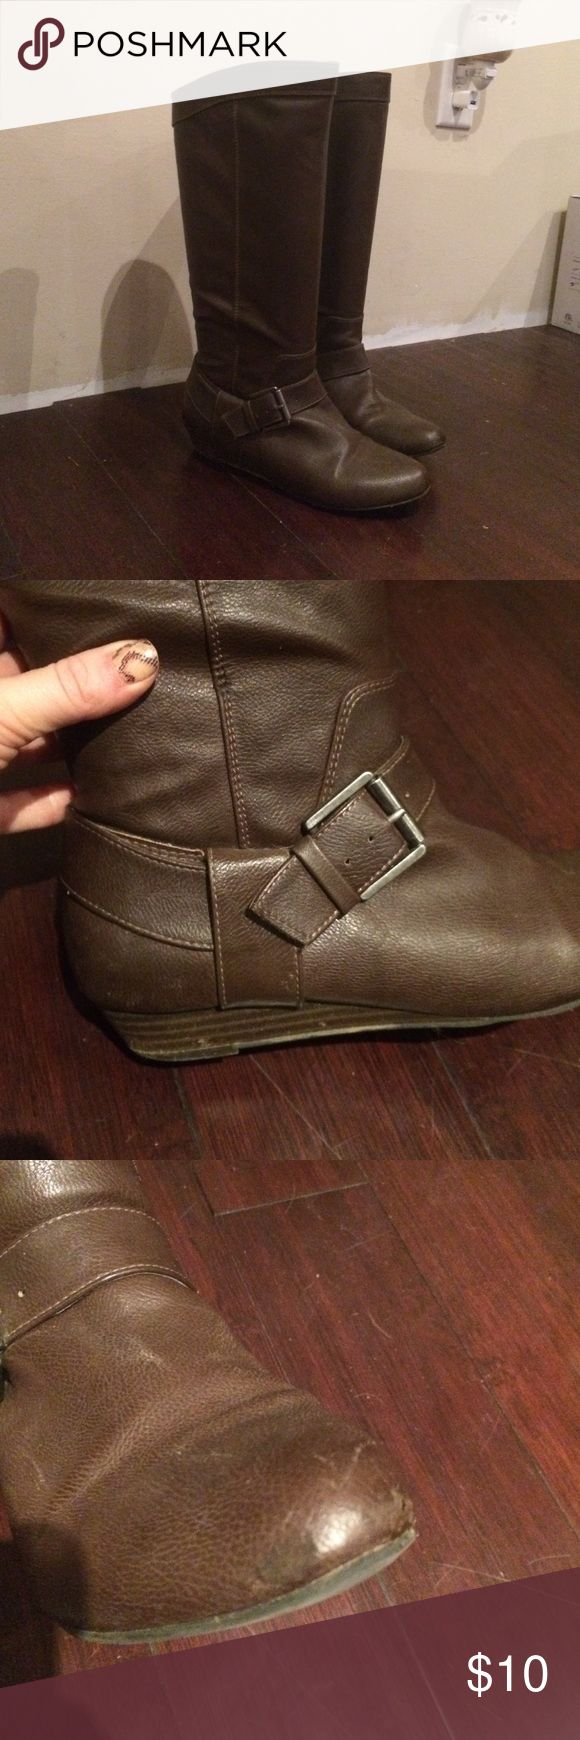 """Brown Women's Riding Boots Size 7 Liz & Co Brown Women's Riding Boots in Size 7. About 1/2"""" heel. Some wear on the toes that I took a picture of, but I did touch them up with boot color. Otherwise in good shape! Height to the knee. Liz & Co Shoes Winter & Rain Boots"""